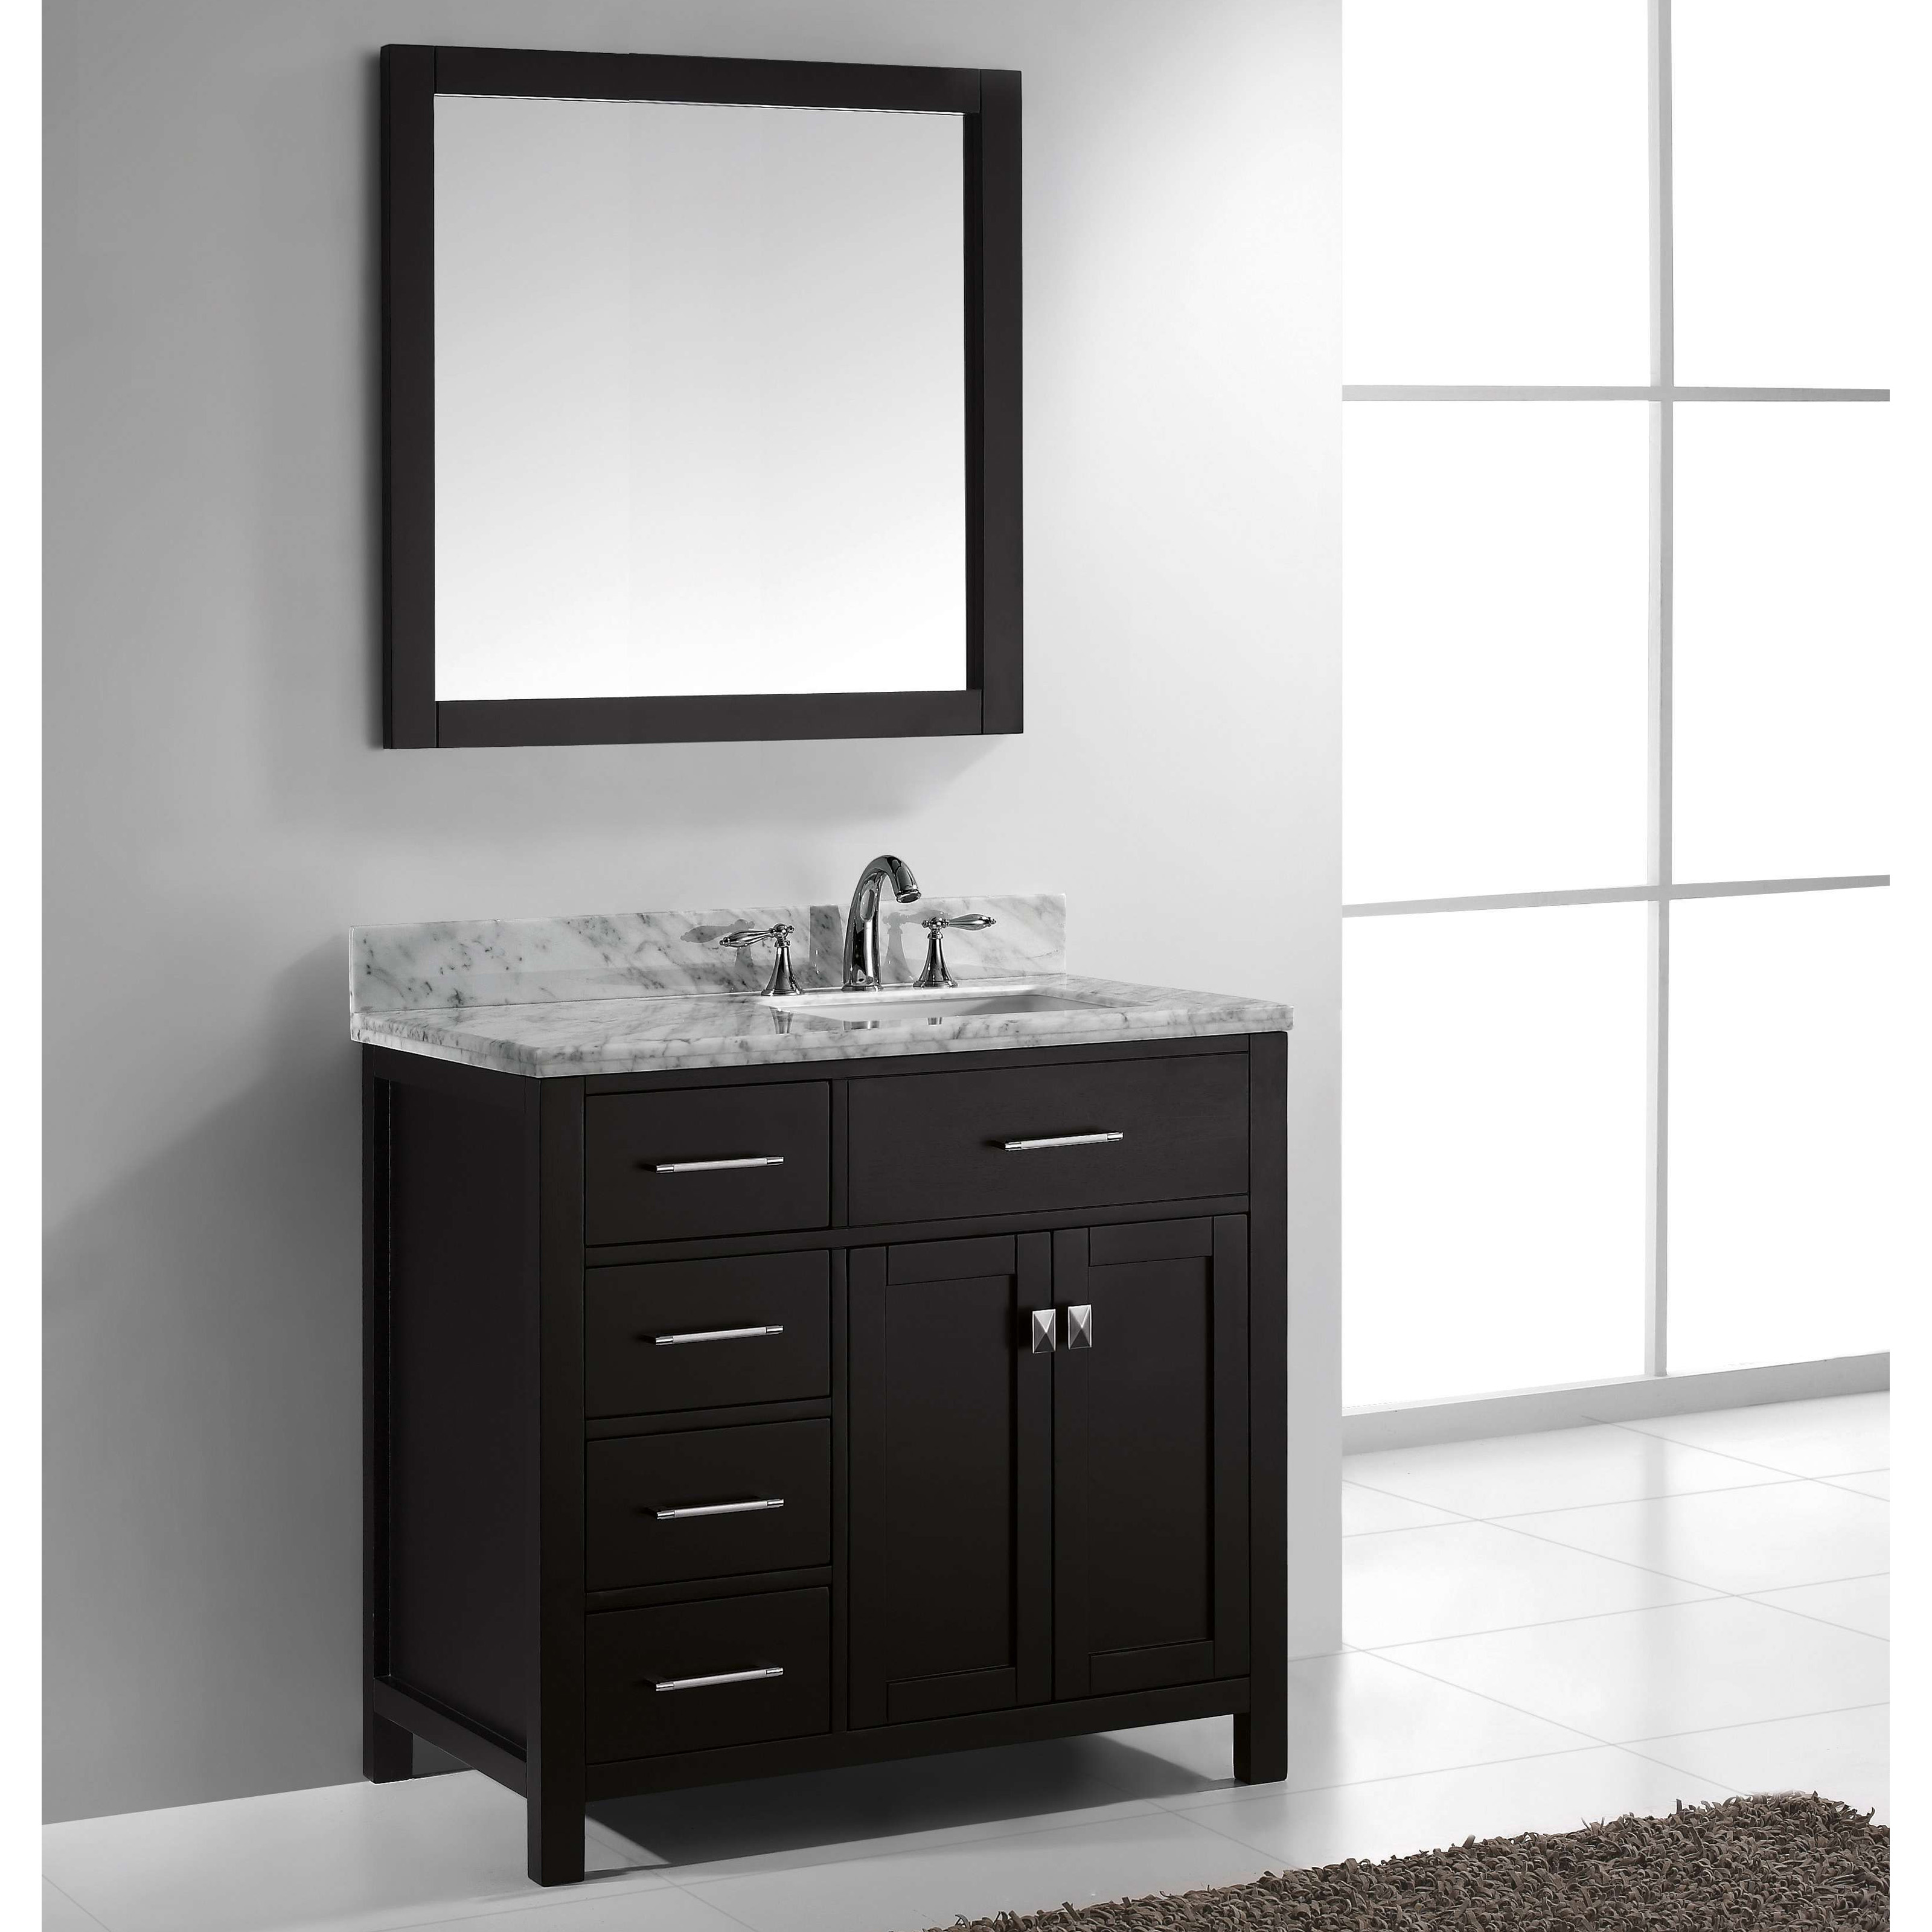 Virtu Usa Caroline Parkway 36 In Single Bathroom Vanity With Right Offset Square Sink Hayneedle